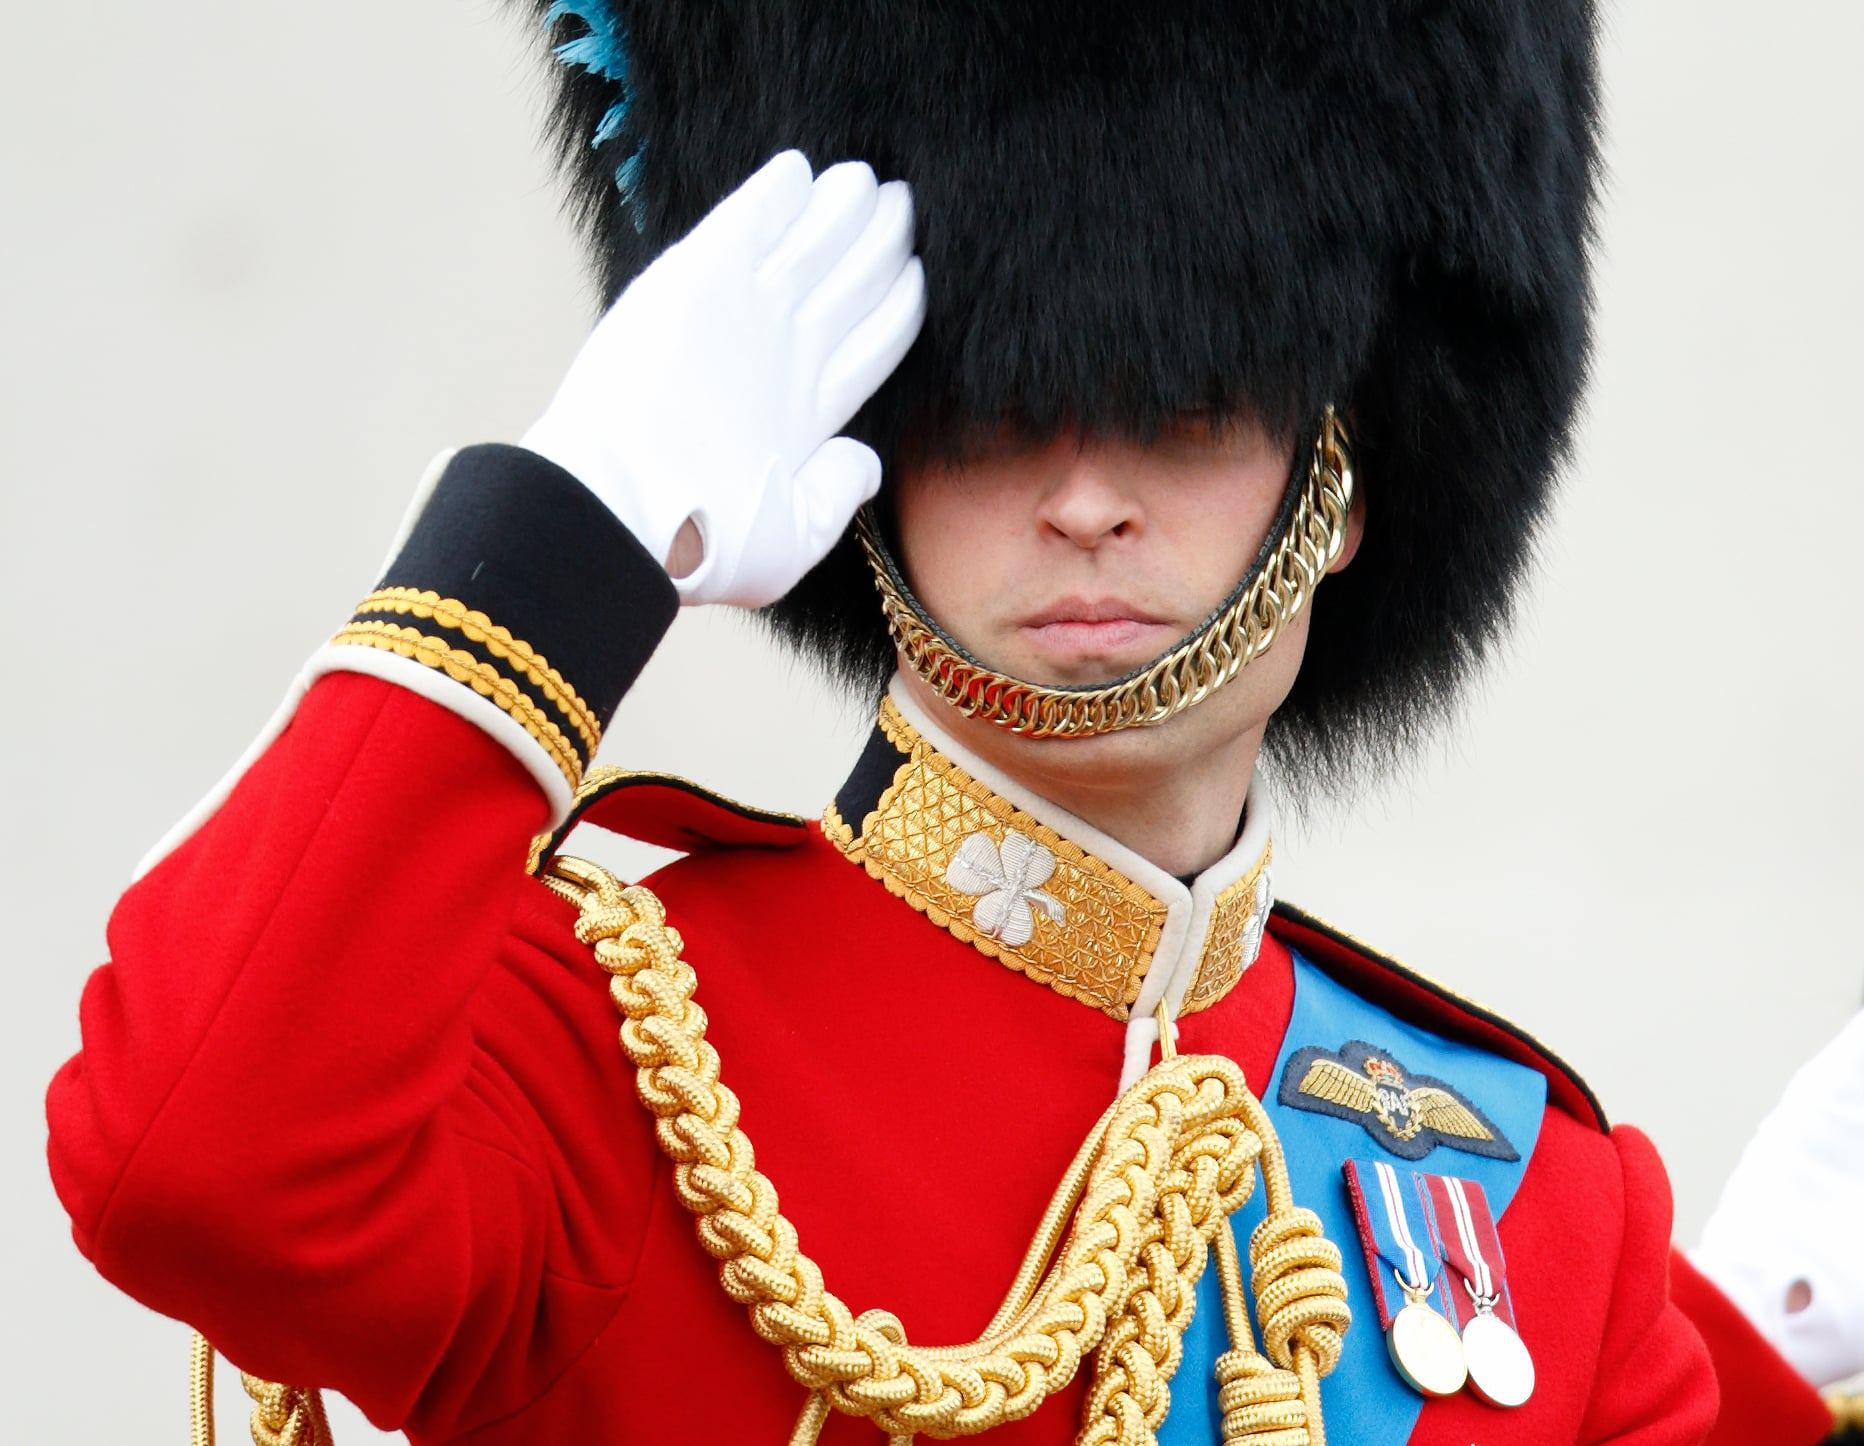 Buckingham Palace Facts When Will Prince William Become King Popsugar Celebrity